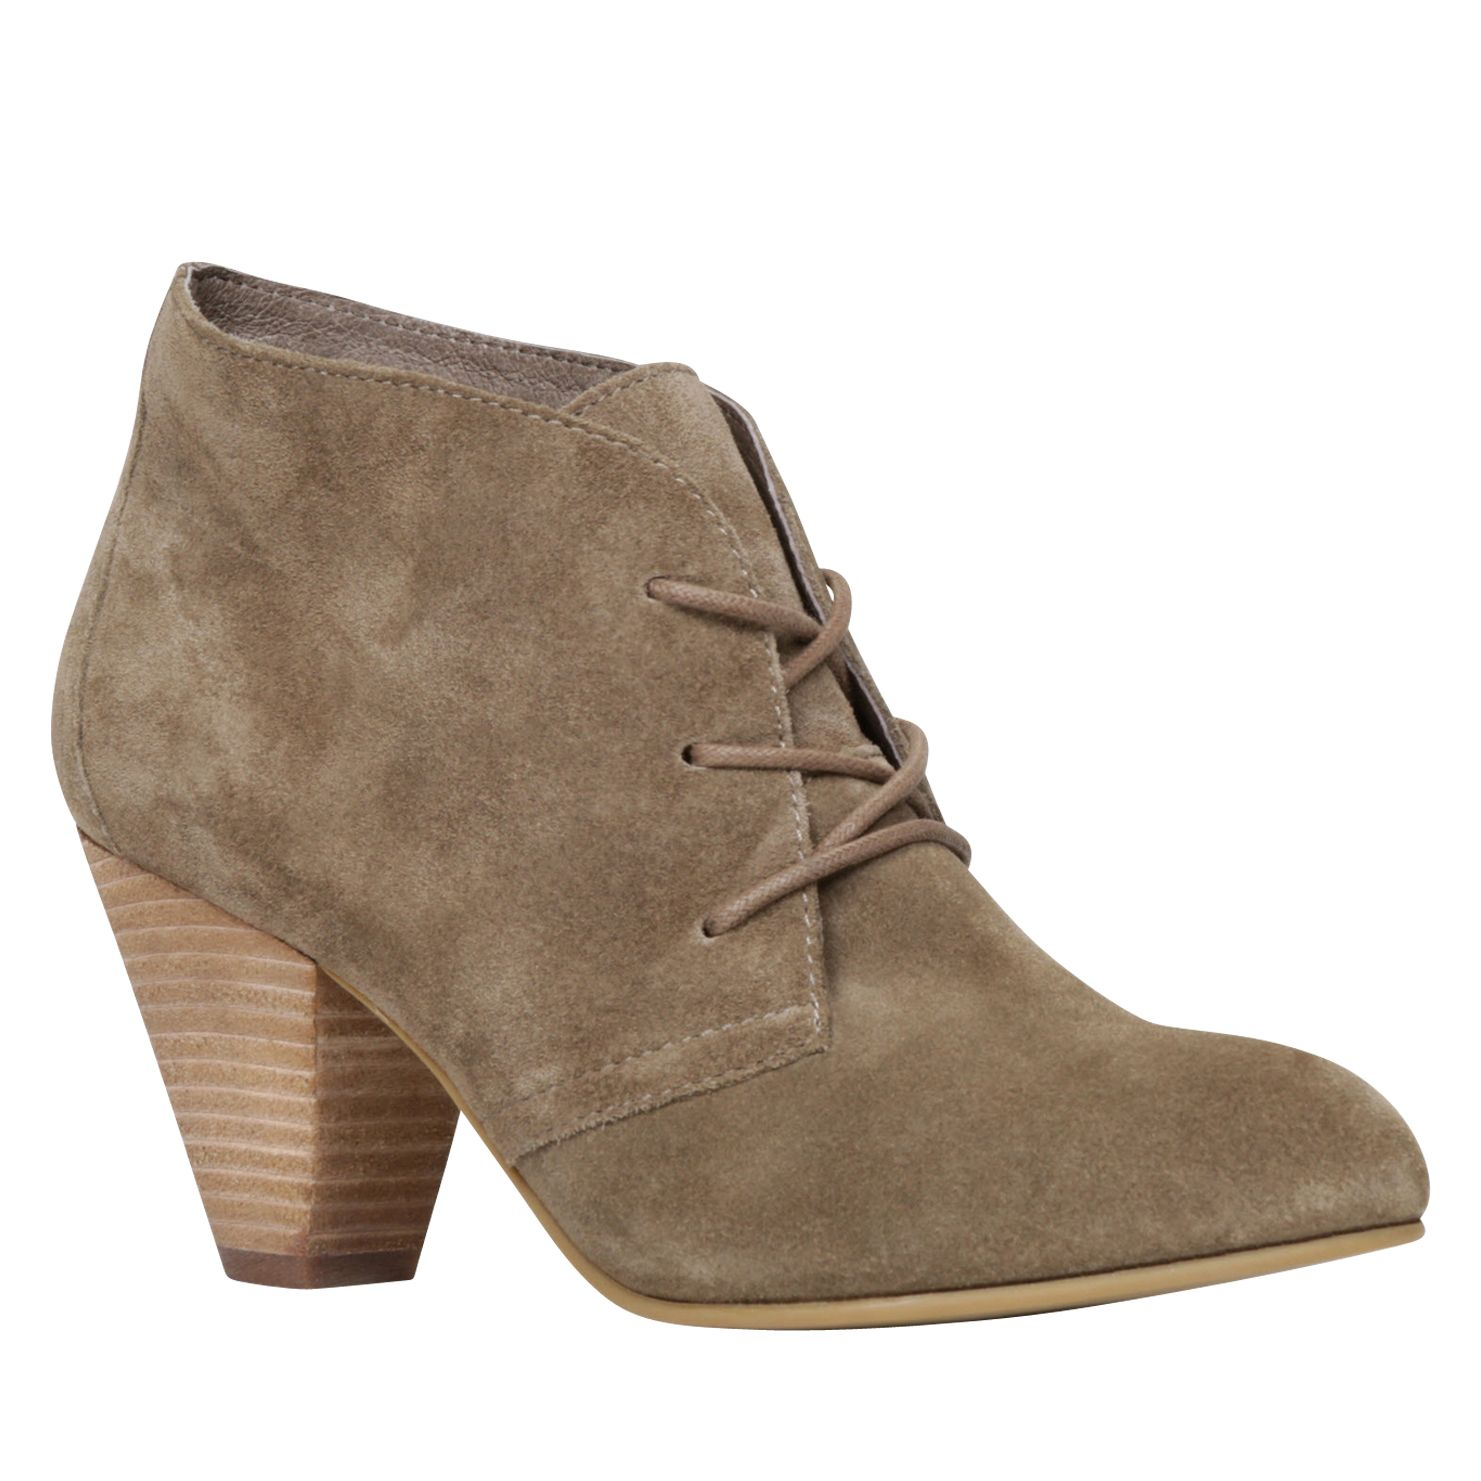 Lace Up Ankle Boots With Block Heel